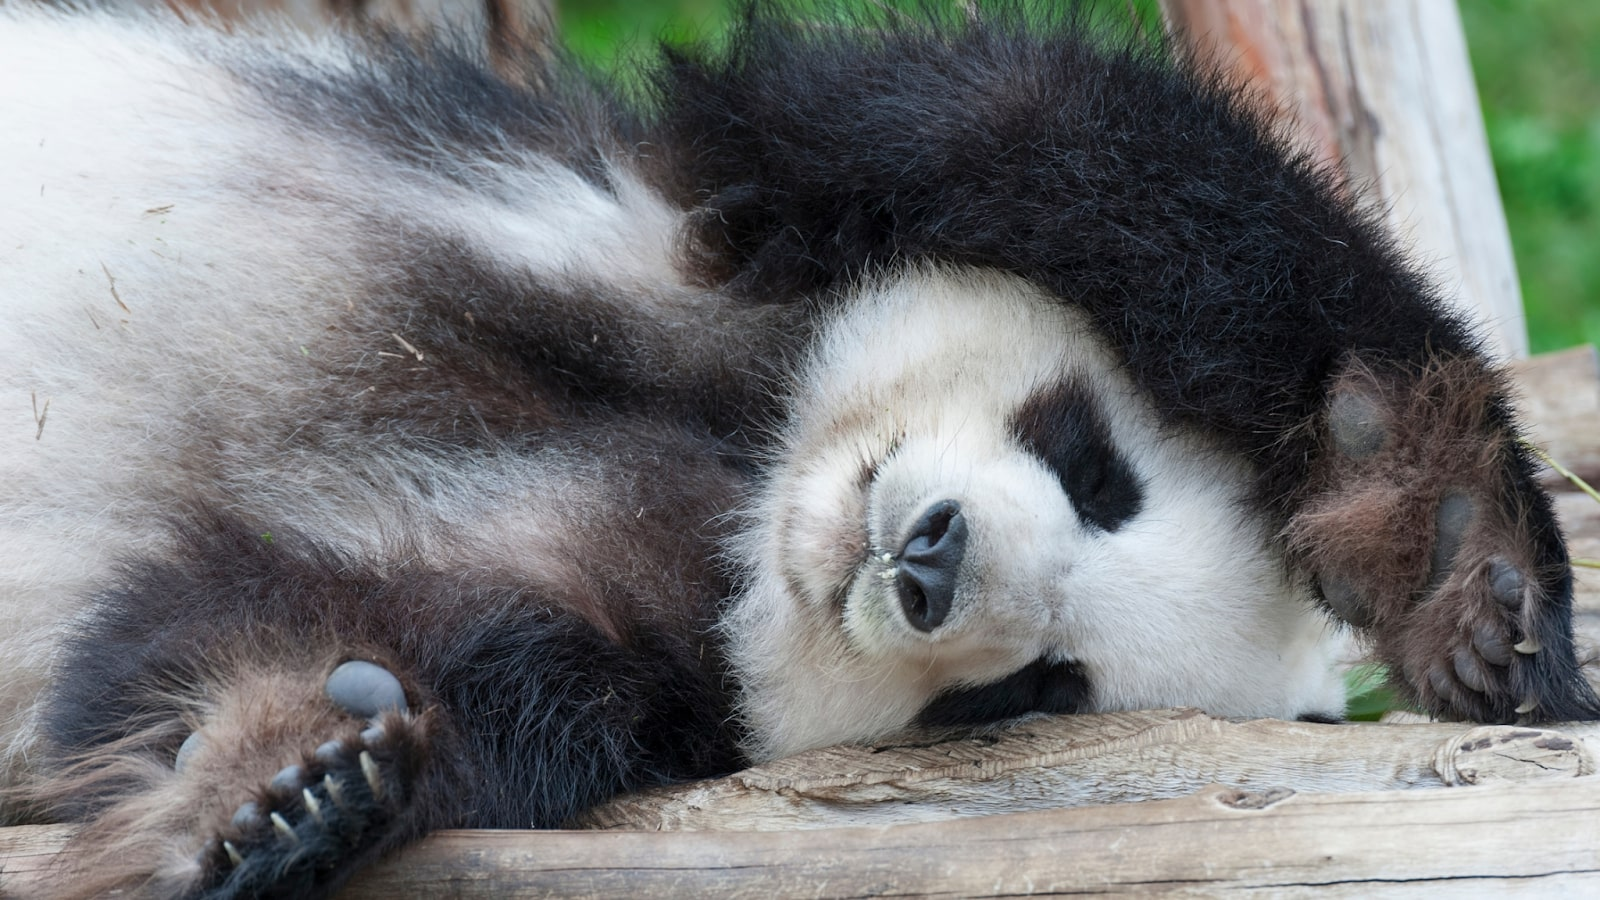 Image with a panda gentle closing eyes and taking a nap